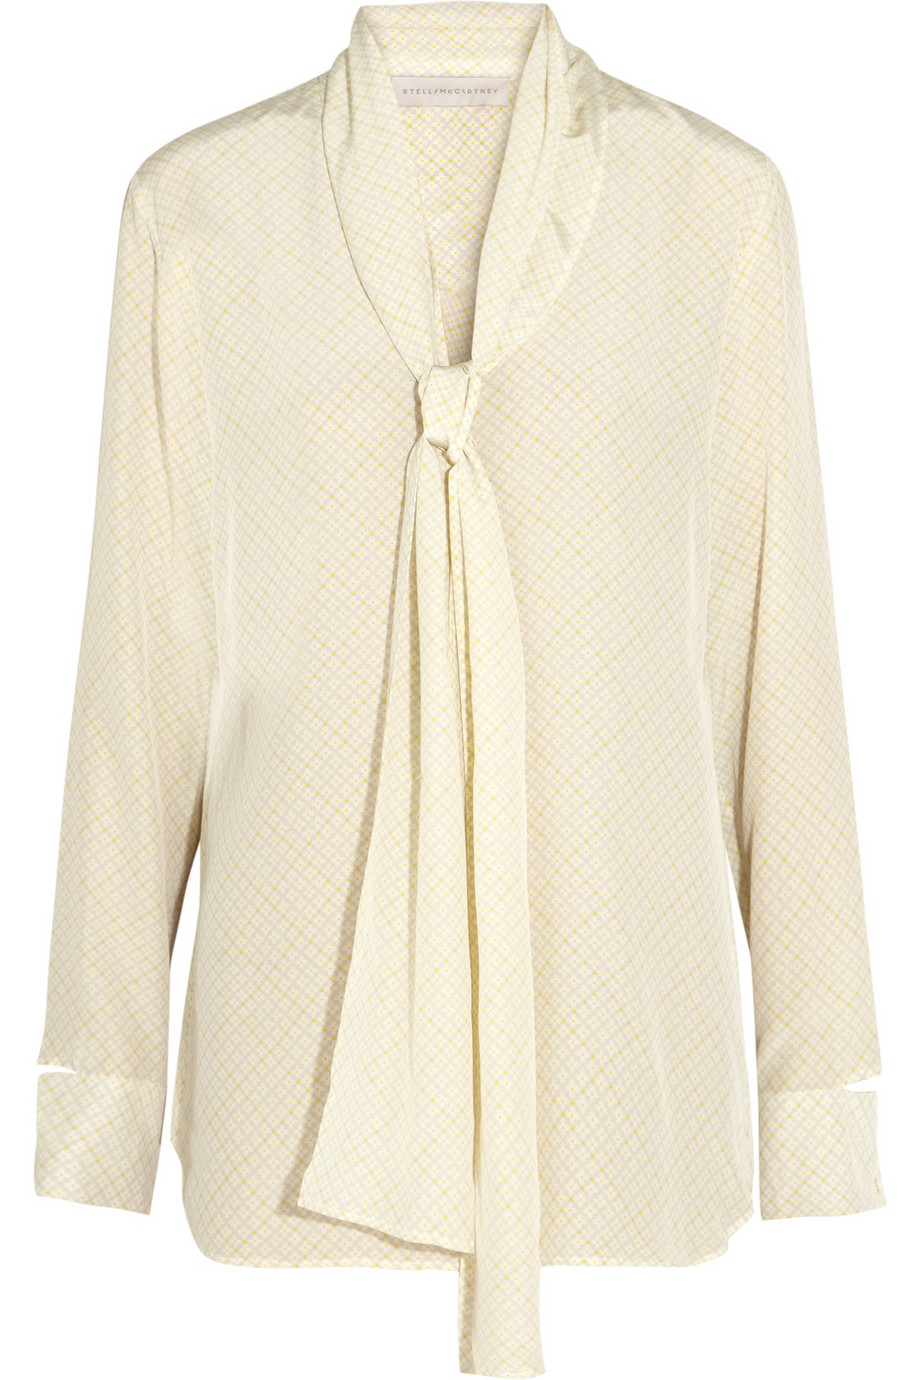 5739a799d3a323 Lyst - Stella McCartney Printed Silk Pussybow Blouse in White